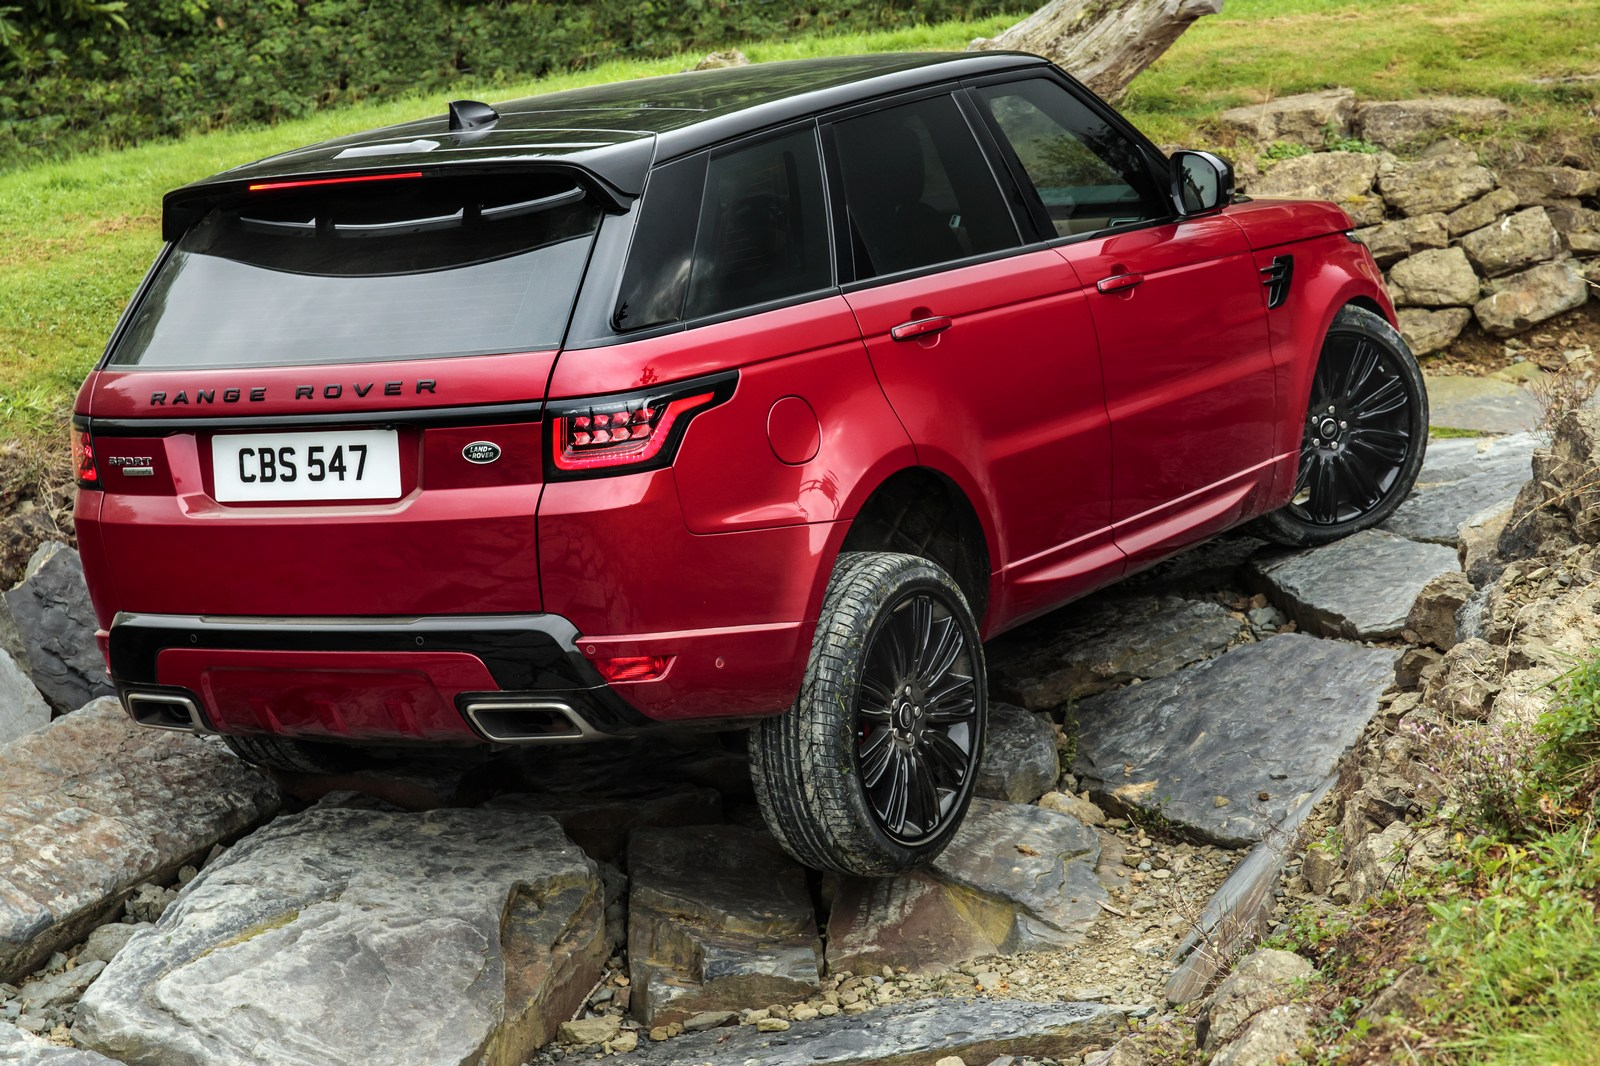 2018 range rover sport lineup revealed with new plug in hybrid and more powerful svr. Black Bedroom Furniture Sets. Home Design Ideas